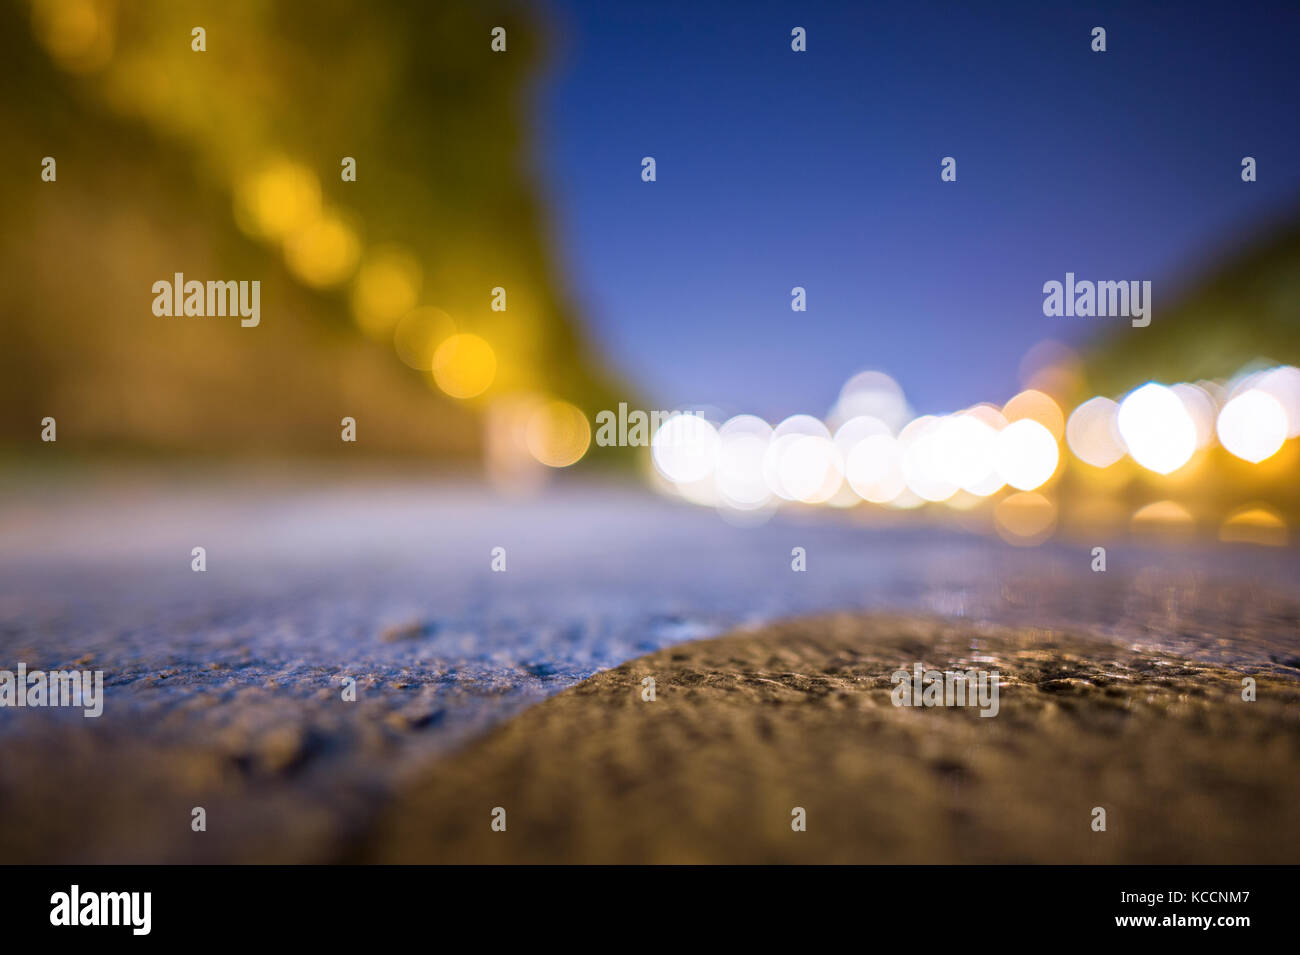 (selective focus, blurred) Blurred nightscape of the Saint Peter Basilica. Photo taken on the banks of the Tiber - Stock Image